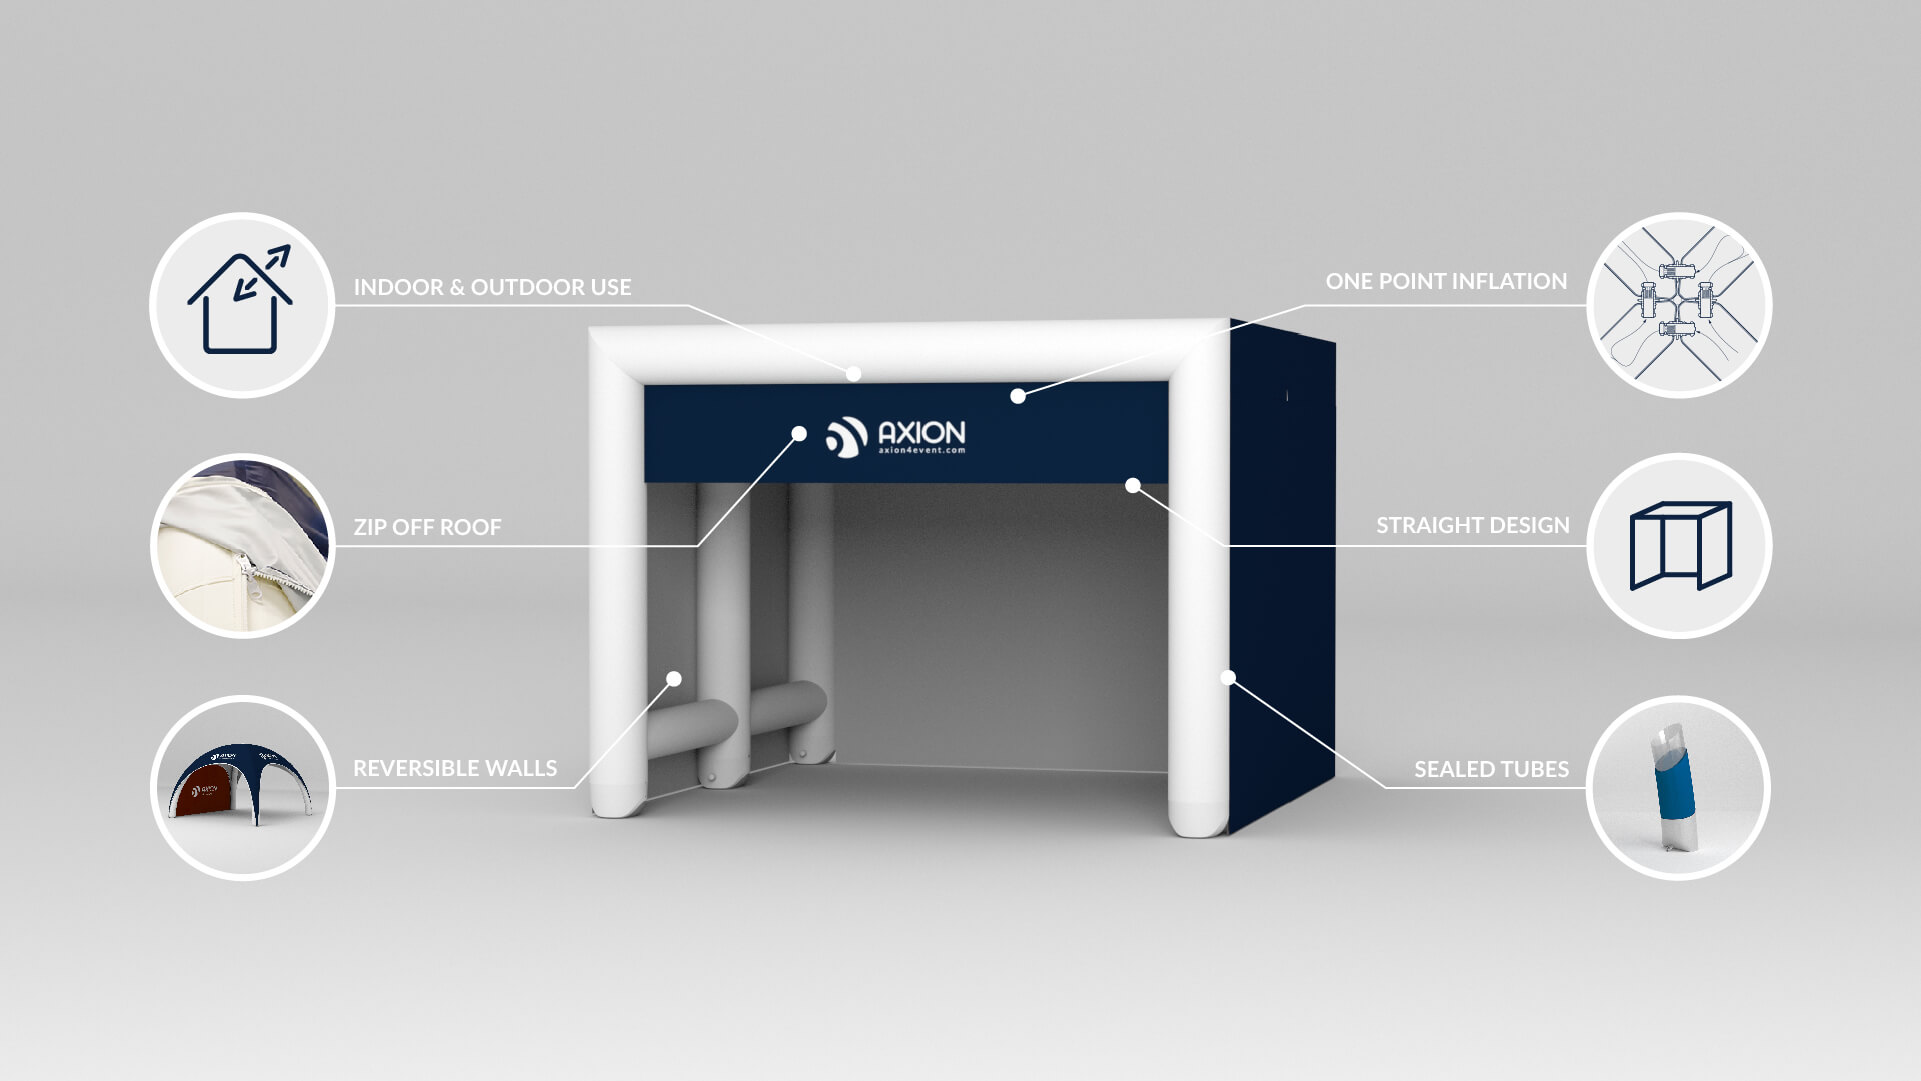 axion-square-tent_main-feature